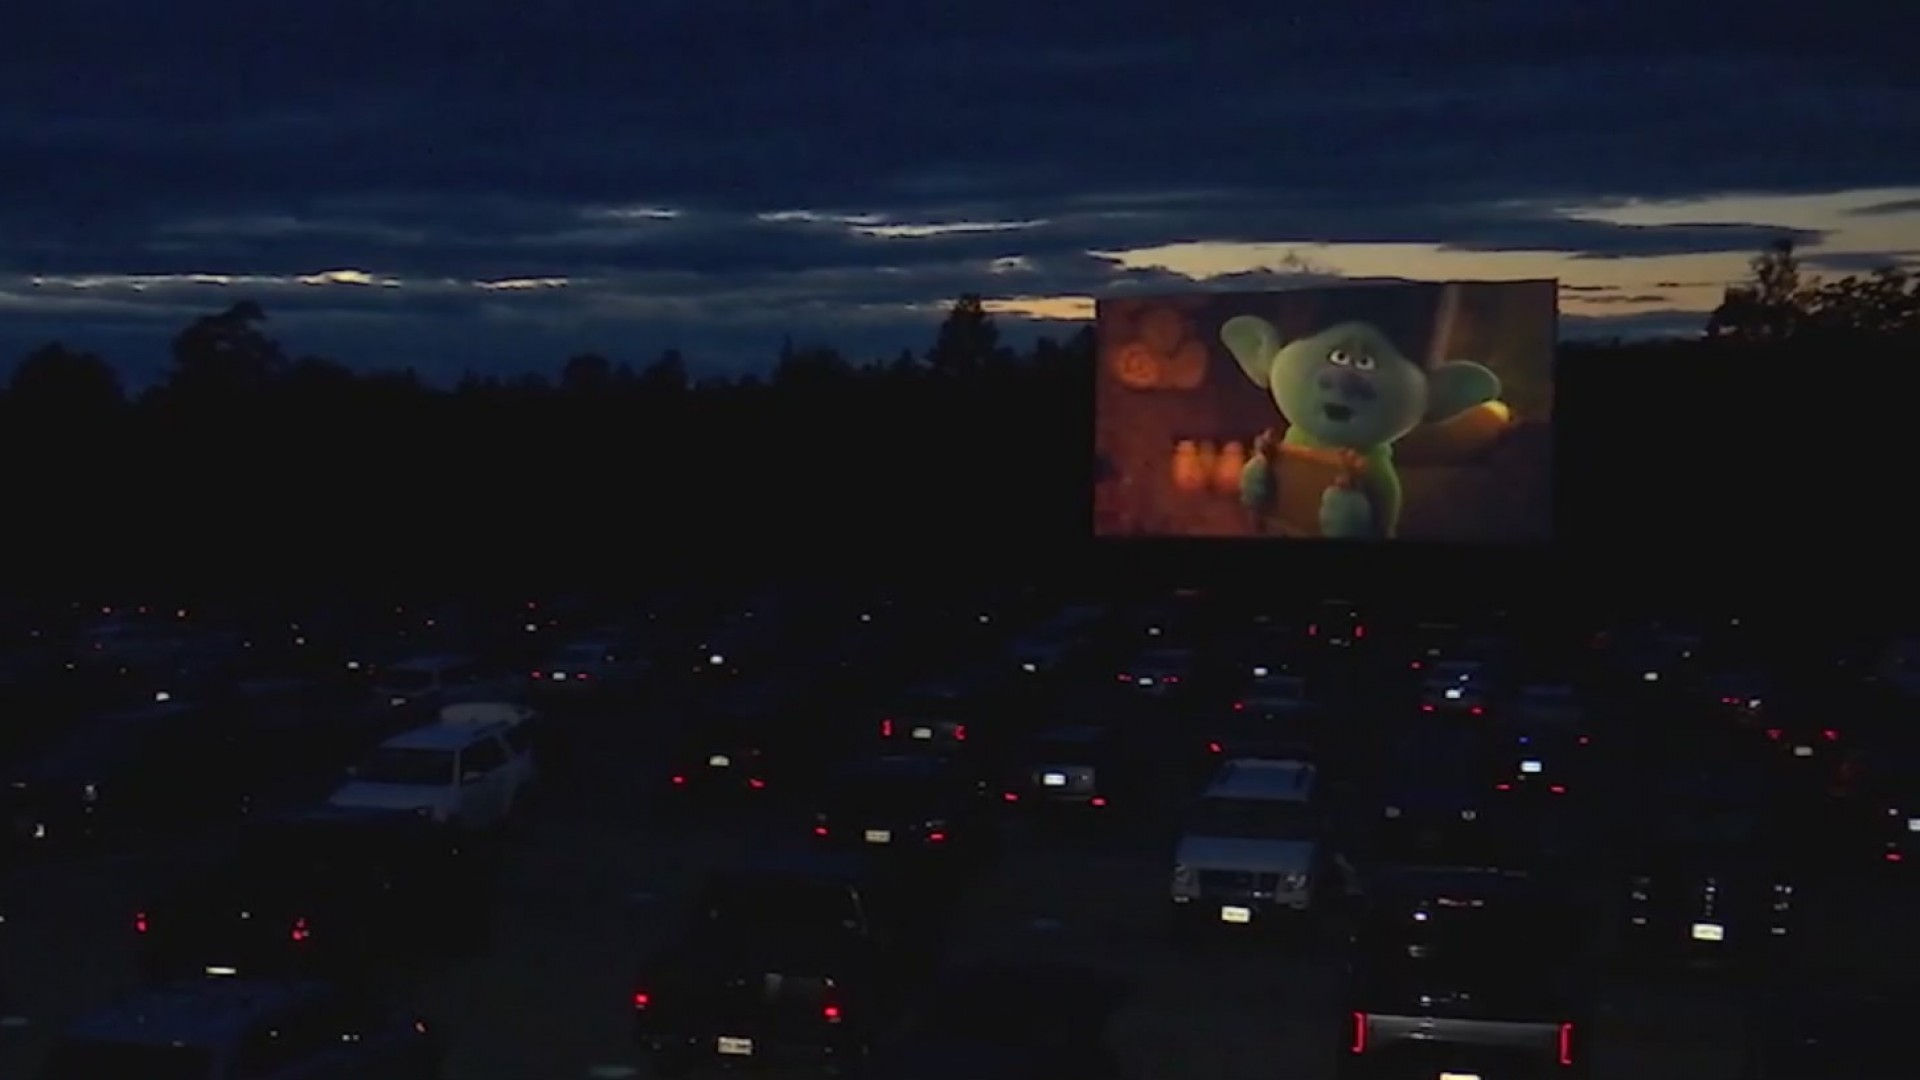 Goochland Drive In Theater Reopens Hosts Socially Distanced Moviegoers 8news Collaborate in microsoft office files without the need to convert file formats, and edit and store over 100 additional file types. goochland drive in theater reopens